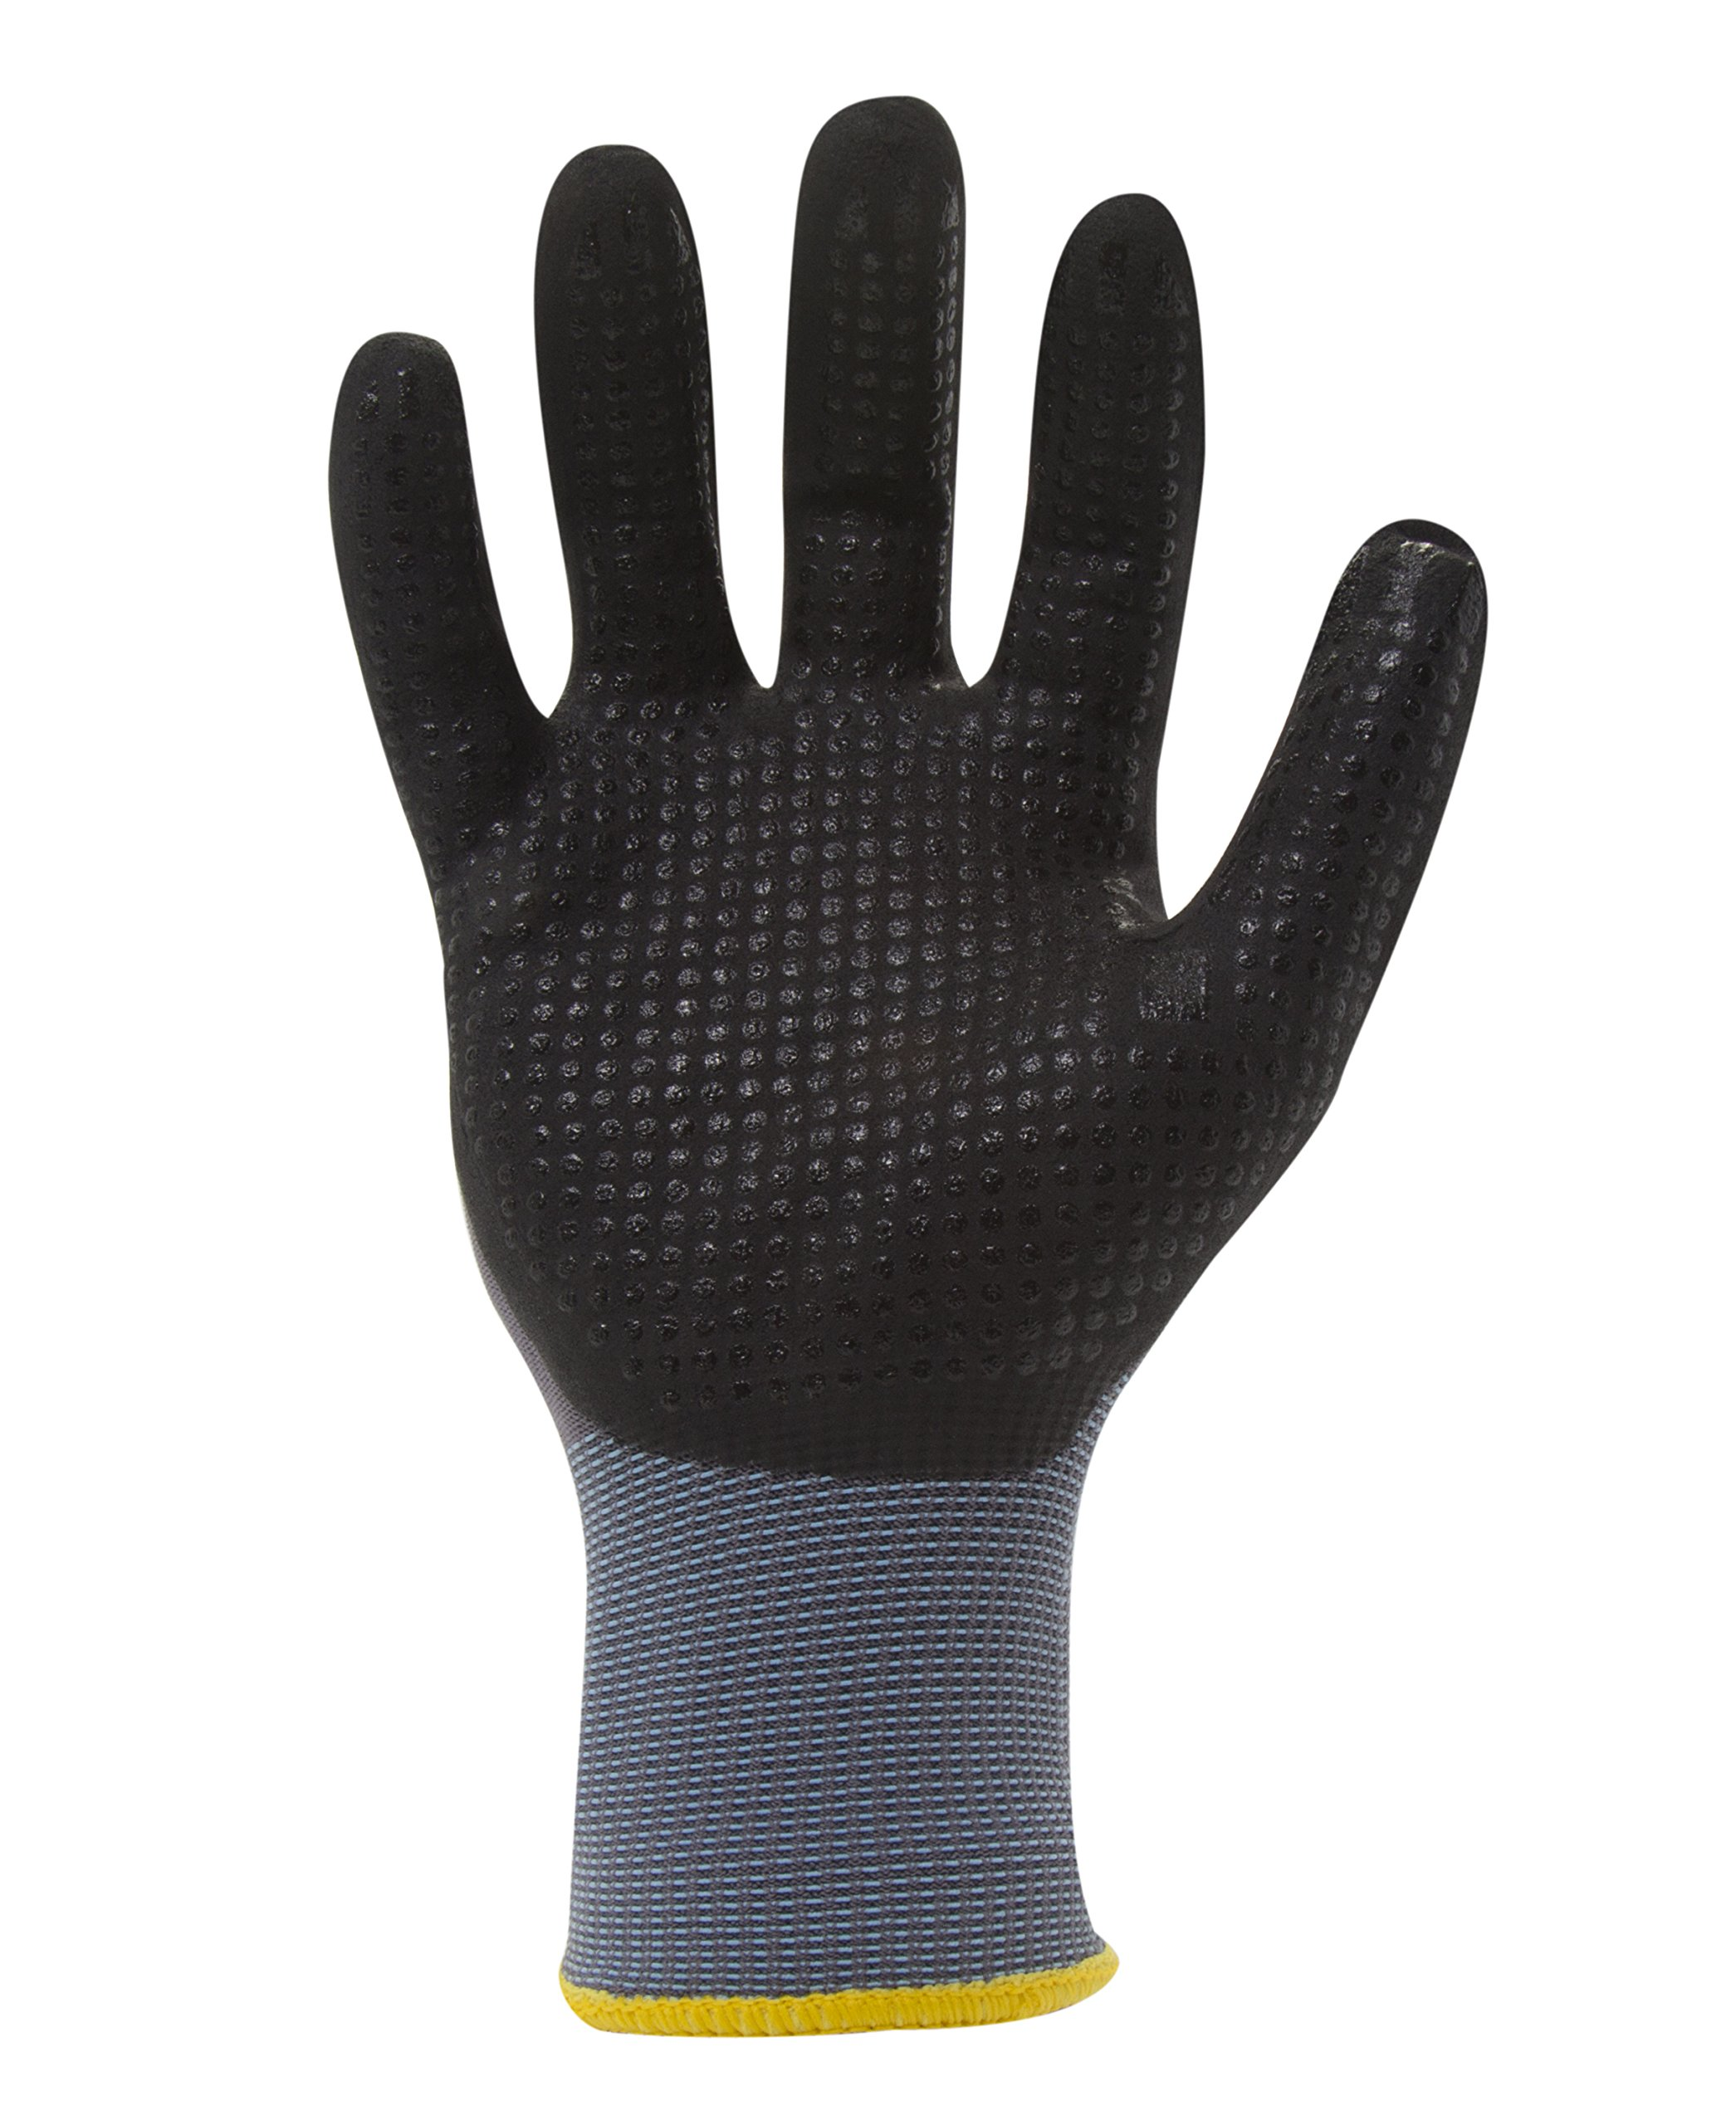 212 Performance Gloves AXDG-16-010 AX360 Dotted Grip Nitrile-dipped Work Glove, 12-Pair Bulk Pack, Large by 212 Performance Gloves (Image #3)